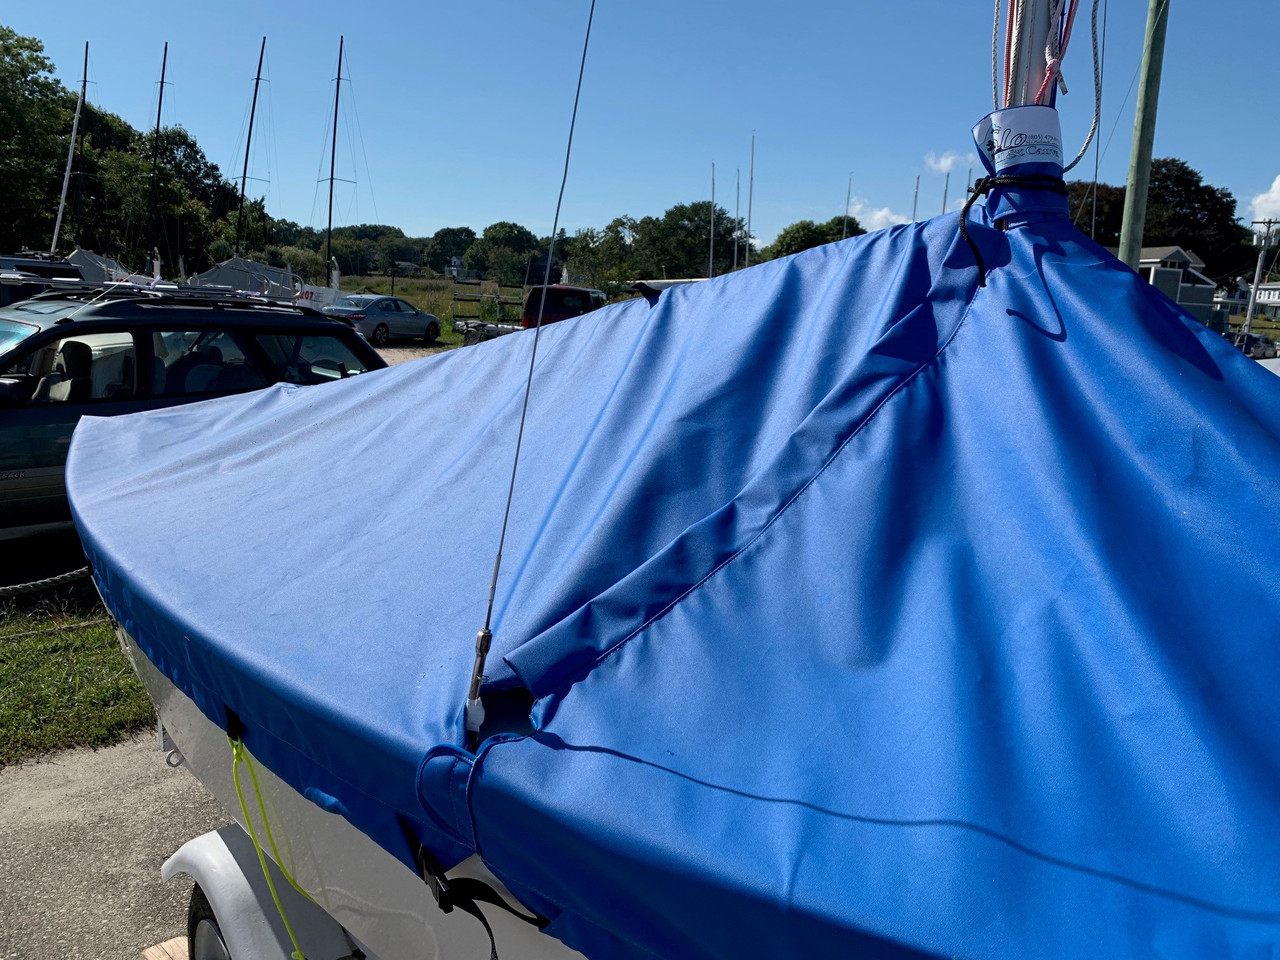 Our Blue Jay Mast Up Peaked Cover has a Zipper leading from the rub rail to the mast.